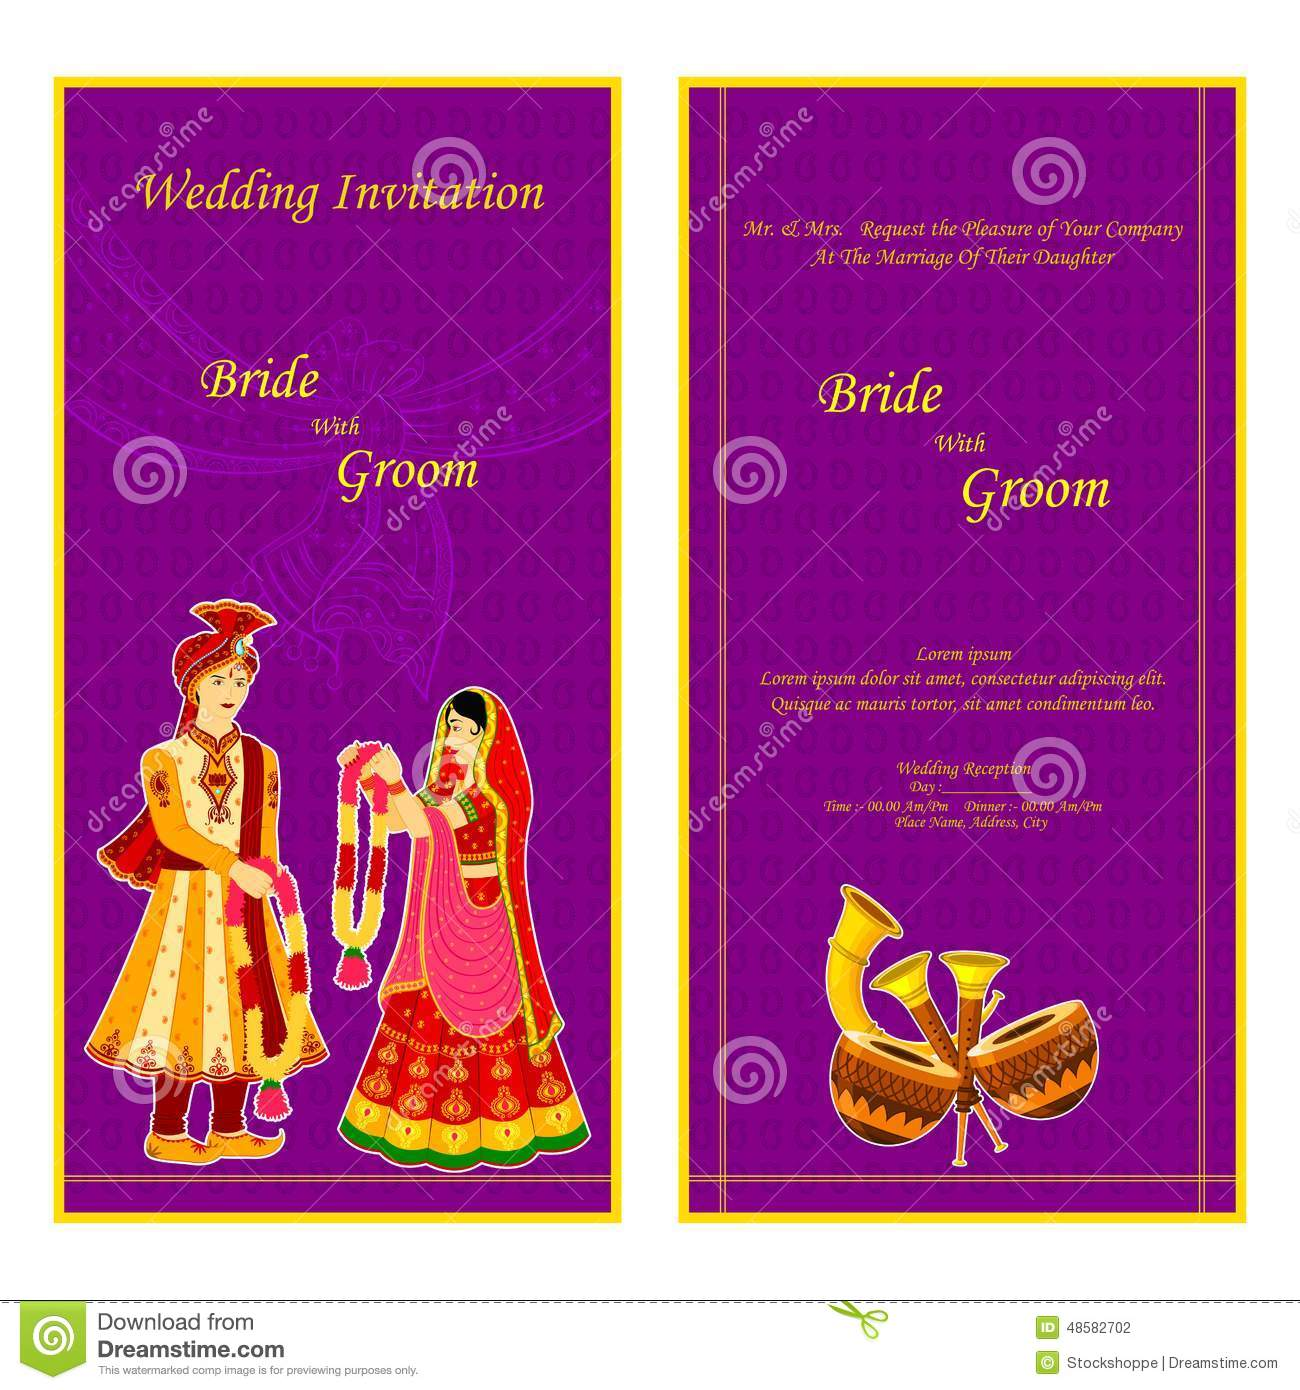 Indian Wedding Invitation Card Stock Vector - Image: 48582702